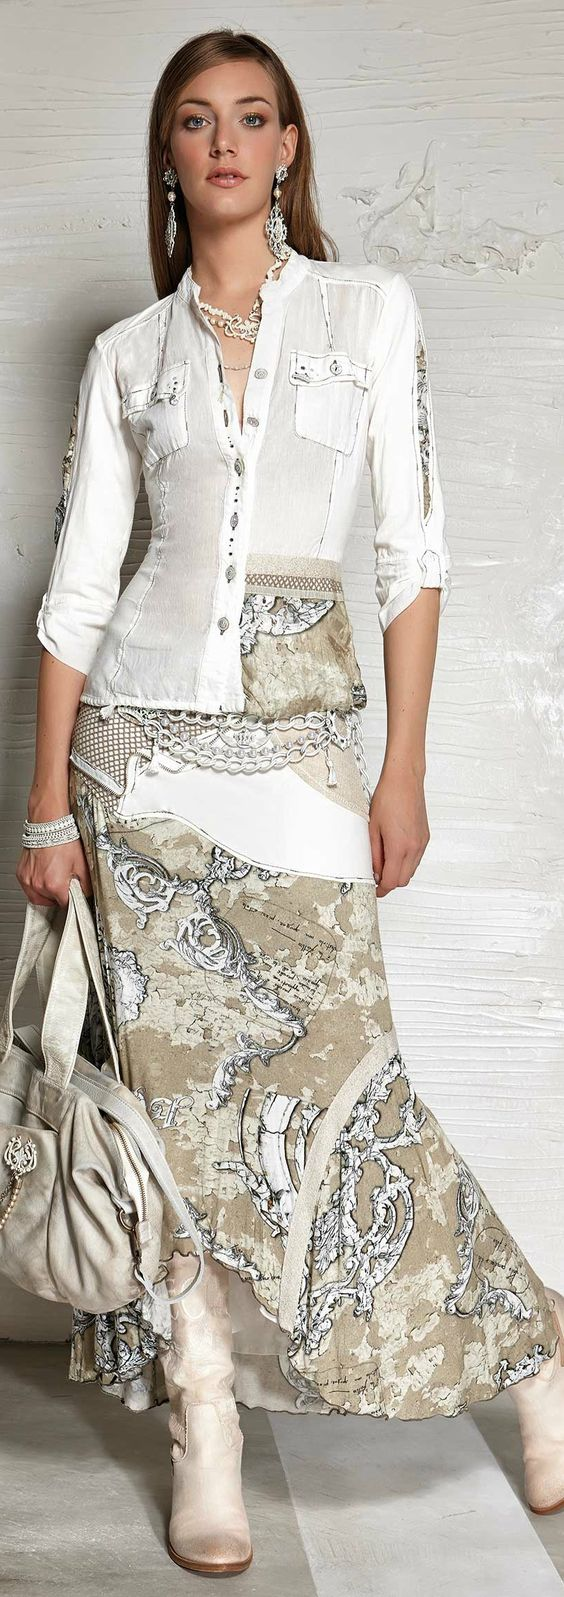 Outstanding white combination outfit